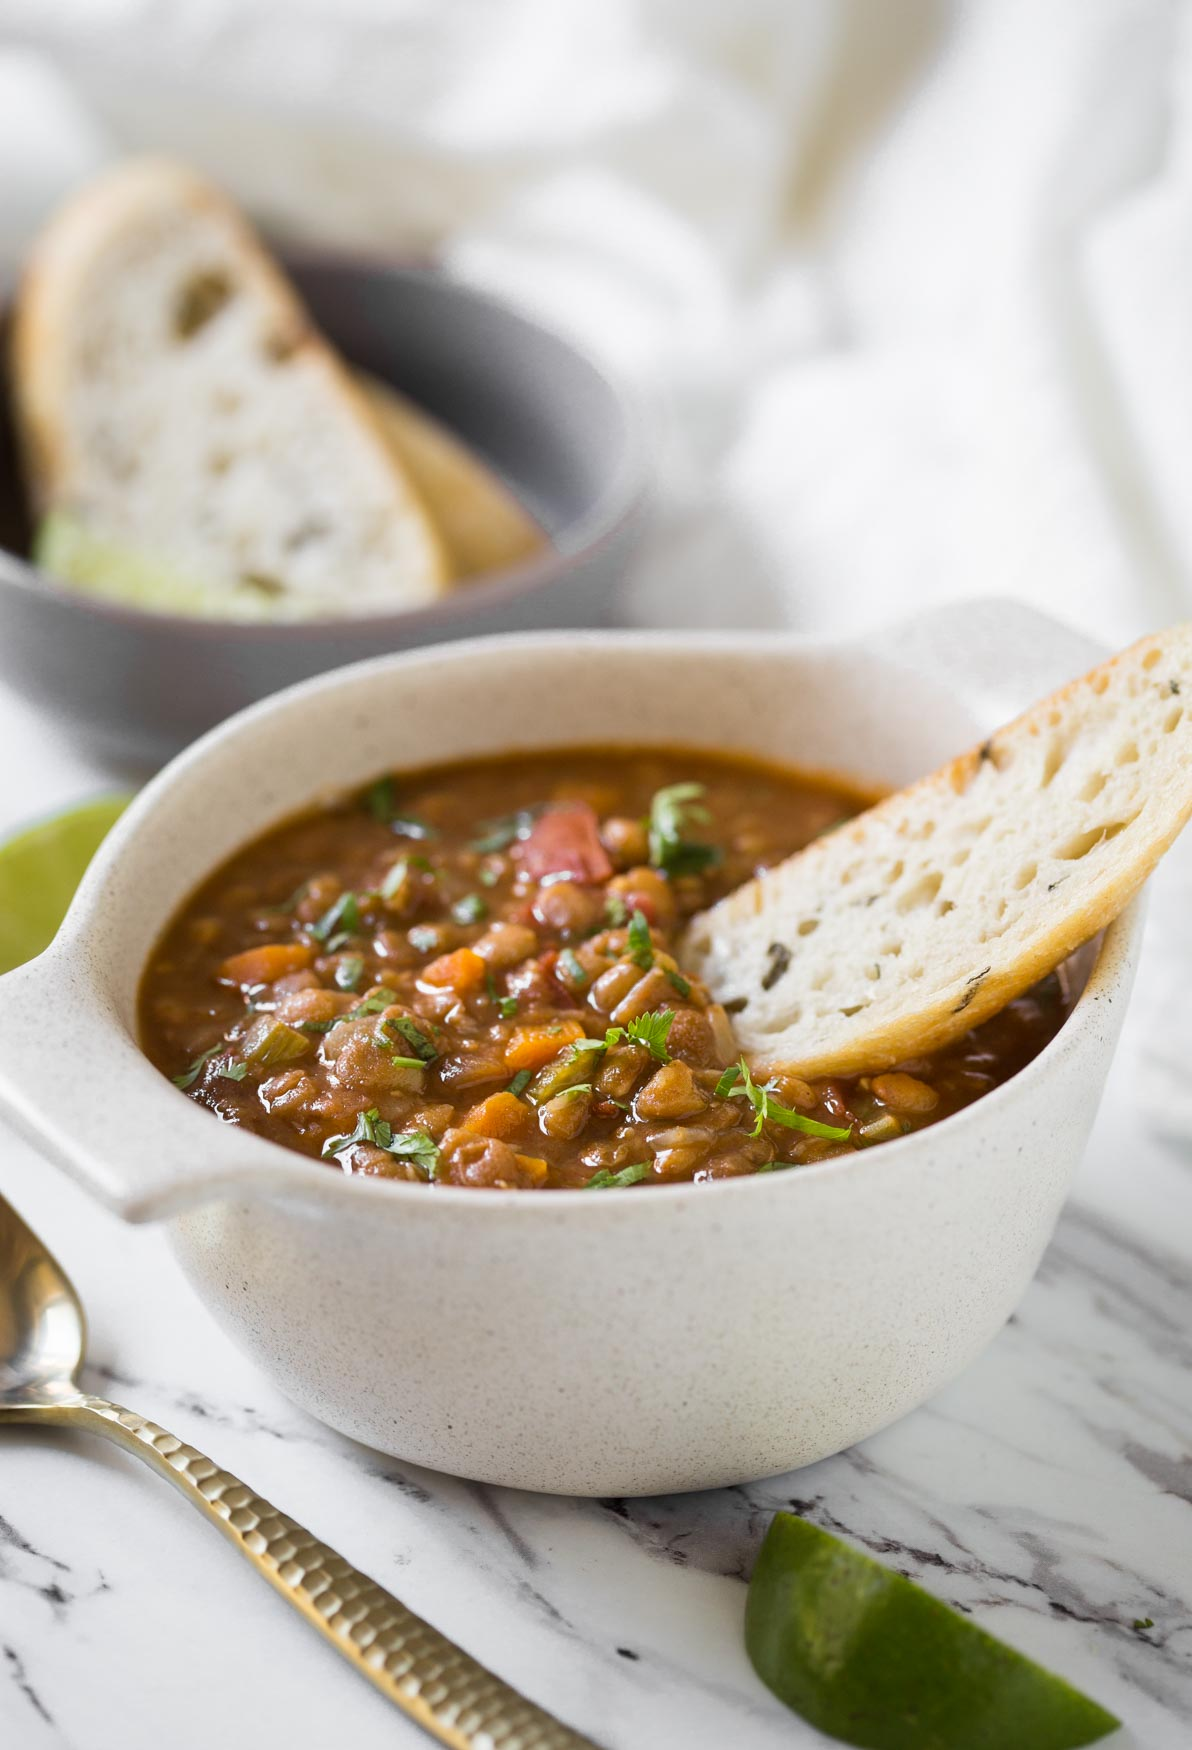 Whole lentil soup in bowl with bread